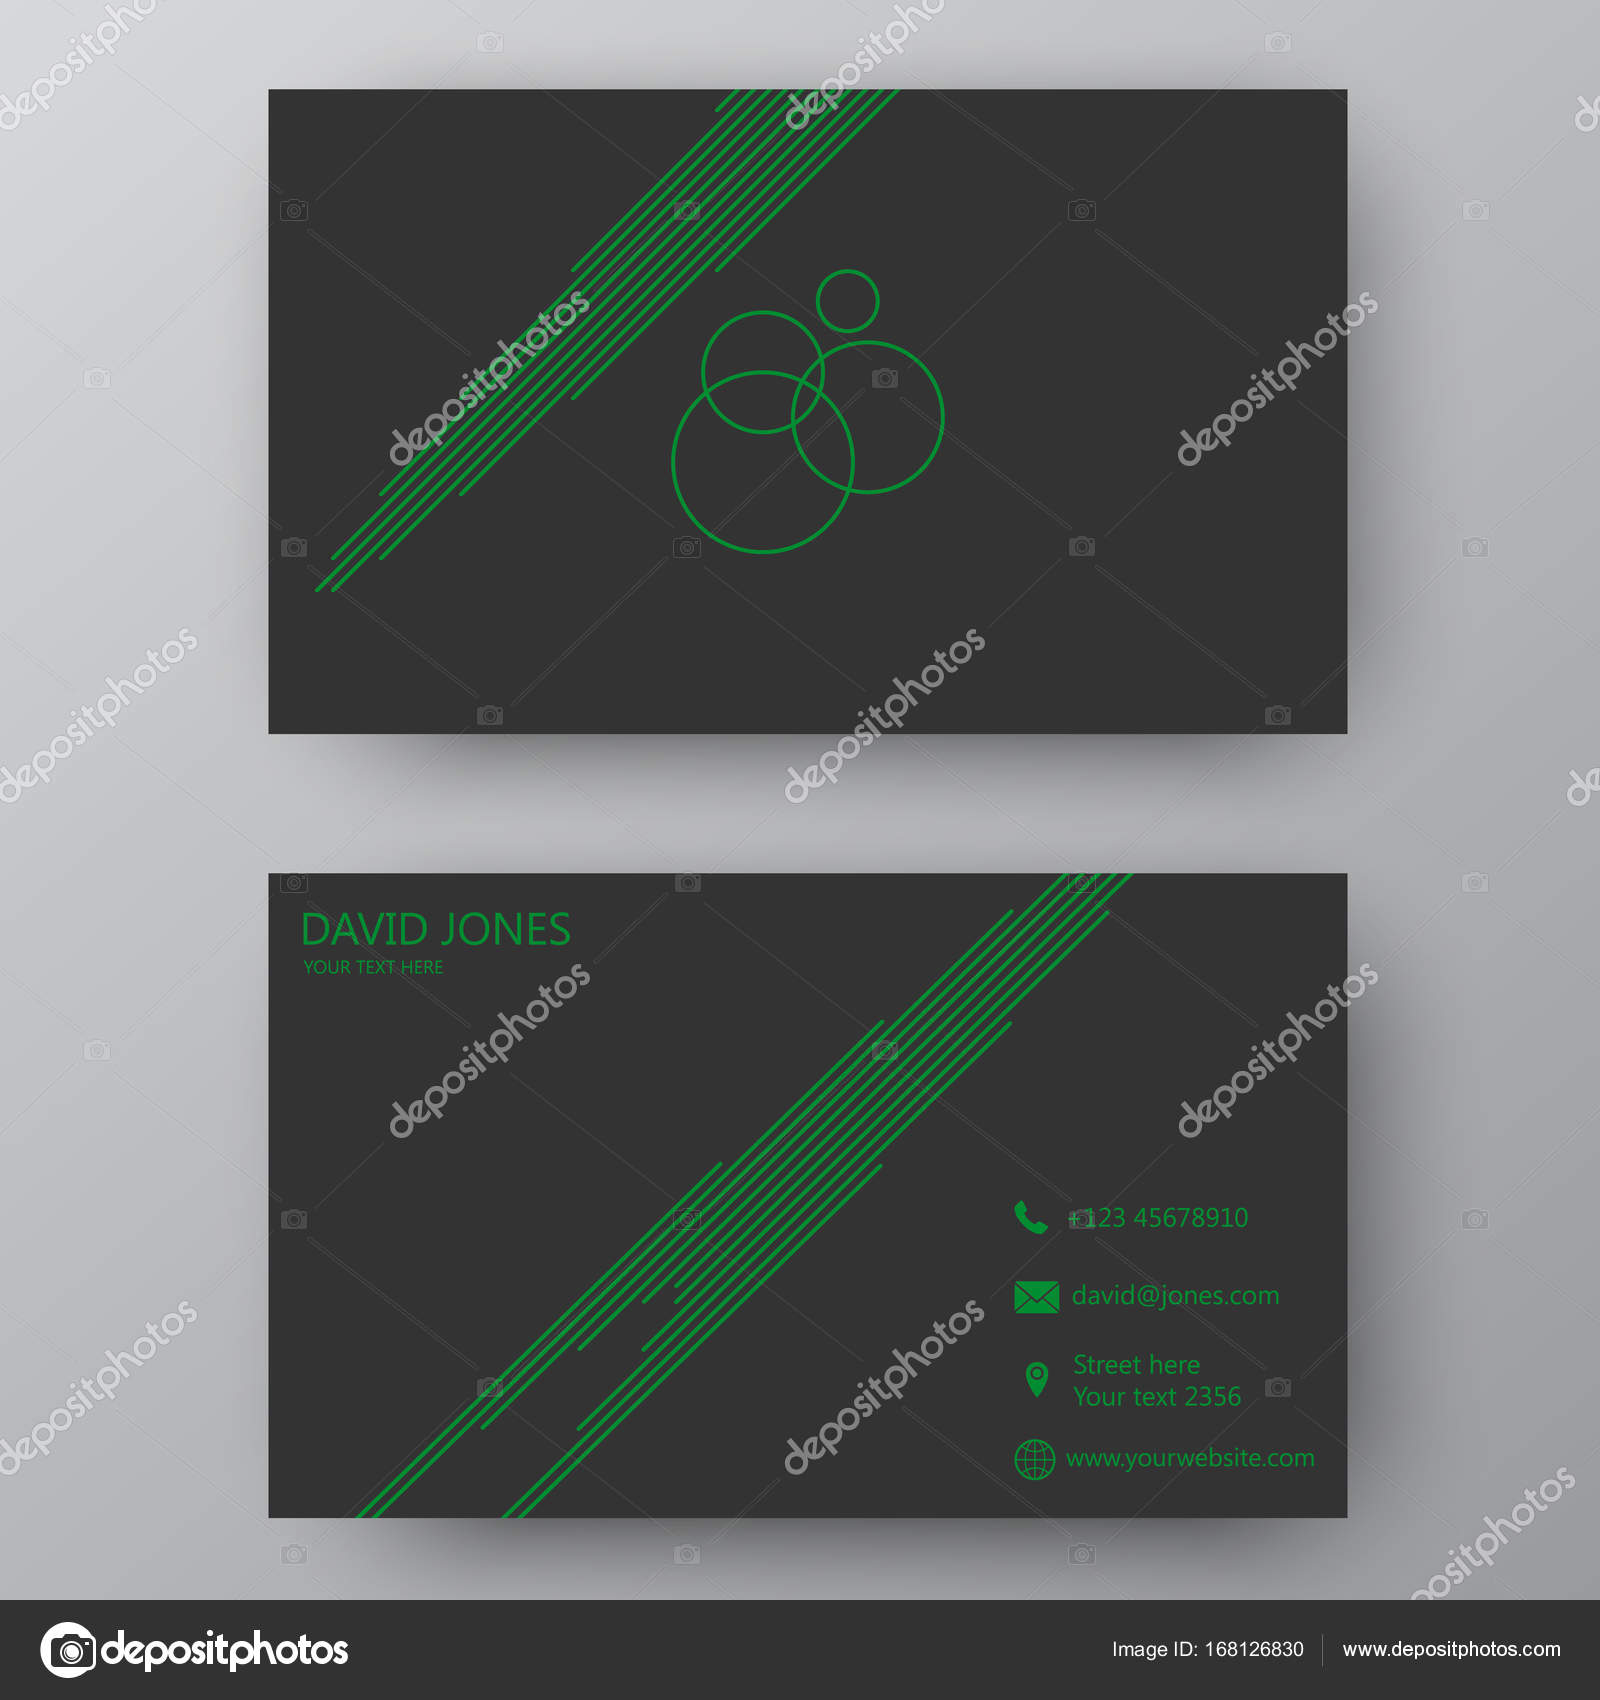 modern presentation card with company logo vector business card